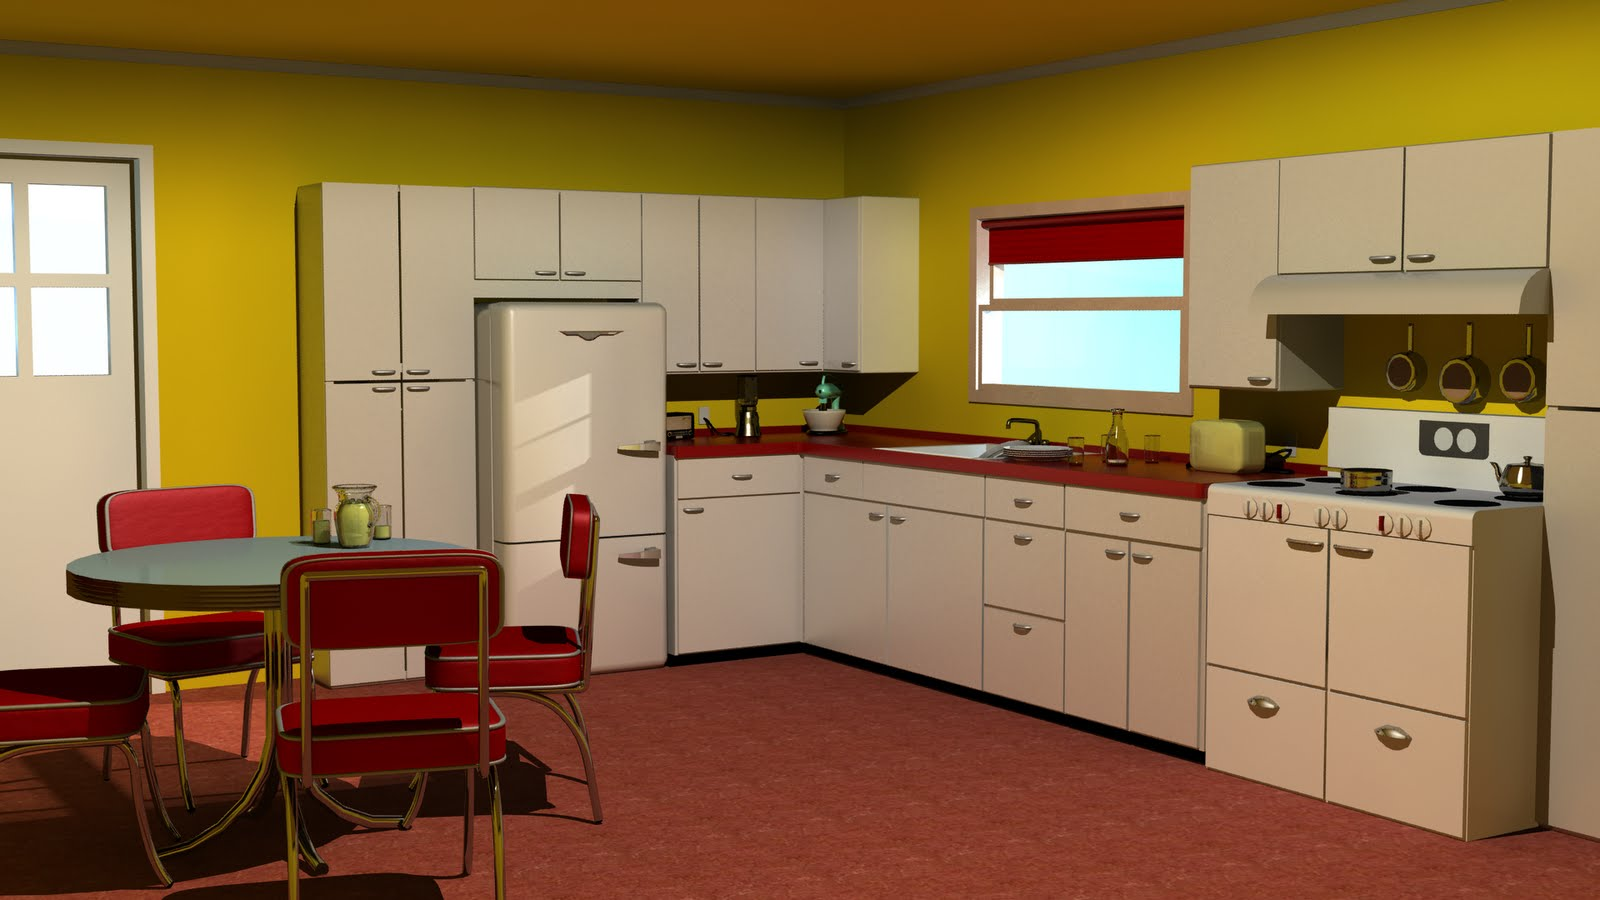 1950s kitchen style afreakatheart - S kitchens ...